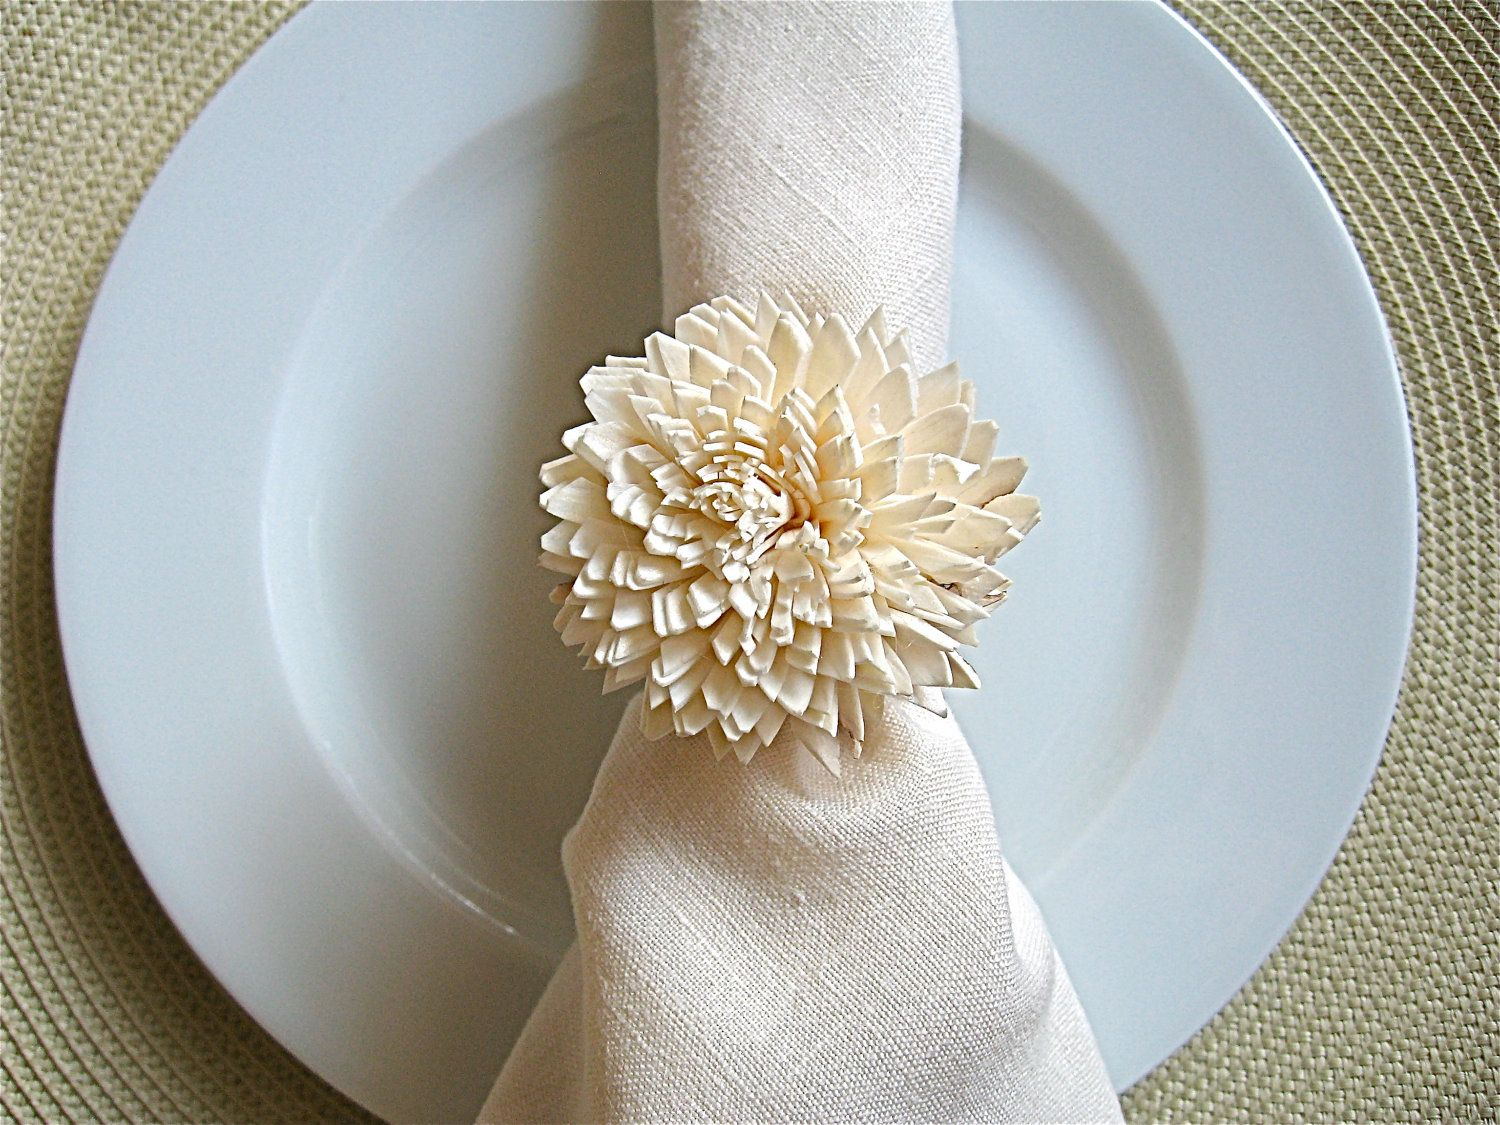 Napkin Rings | Wedding Reception Place Setting Napkin Ring | OneWed.com